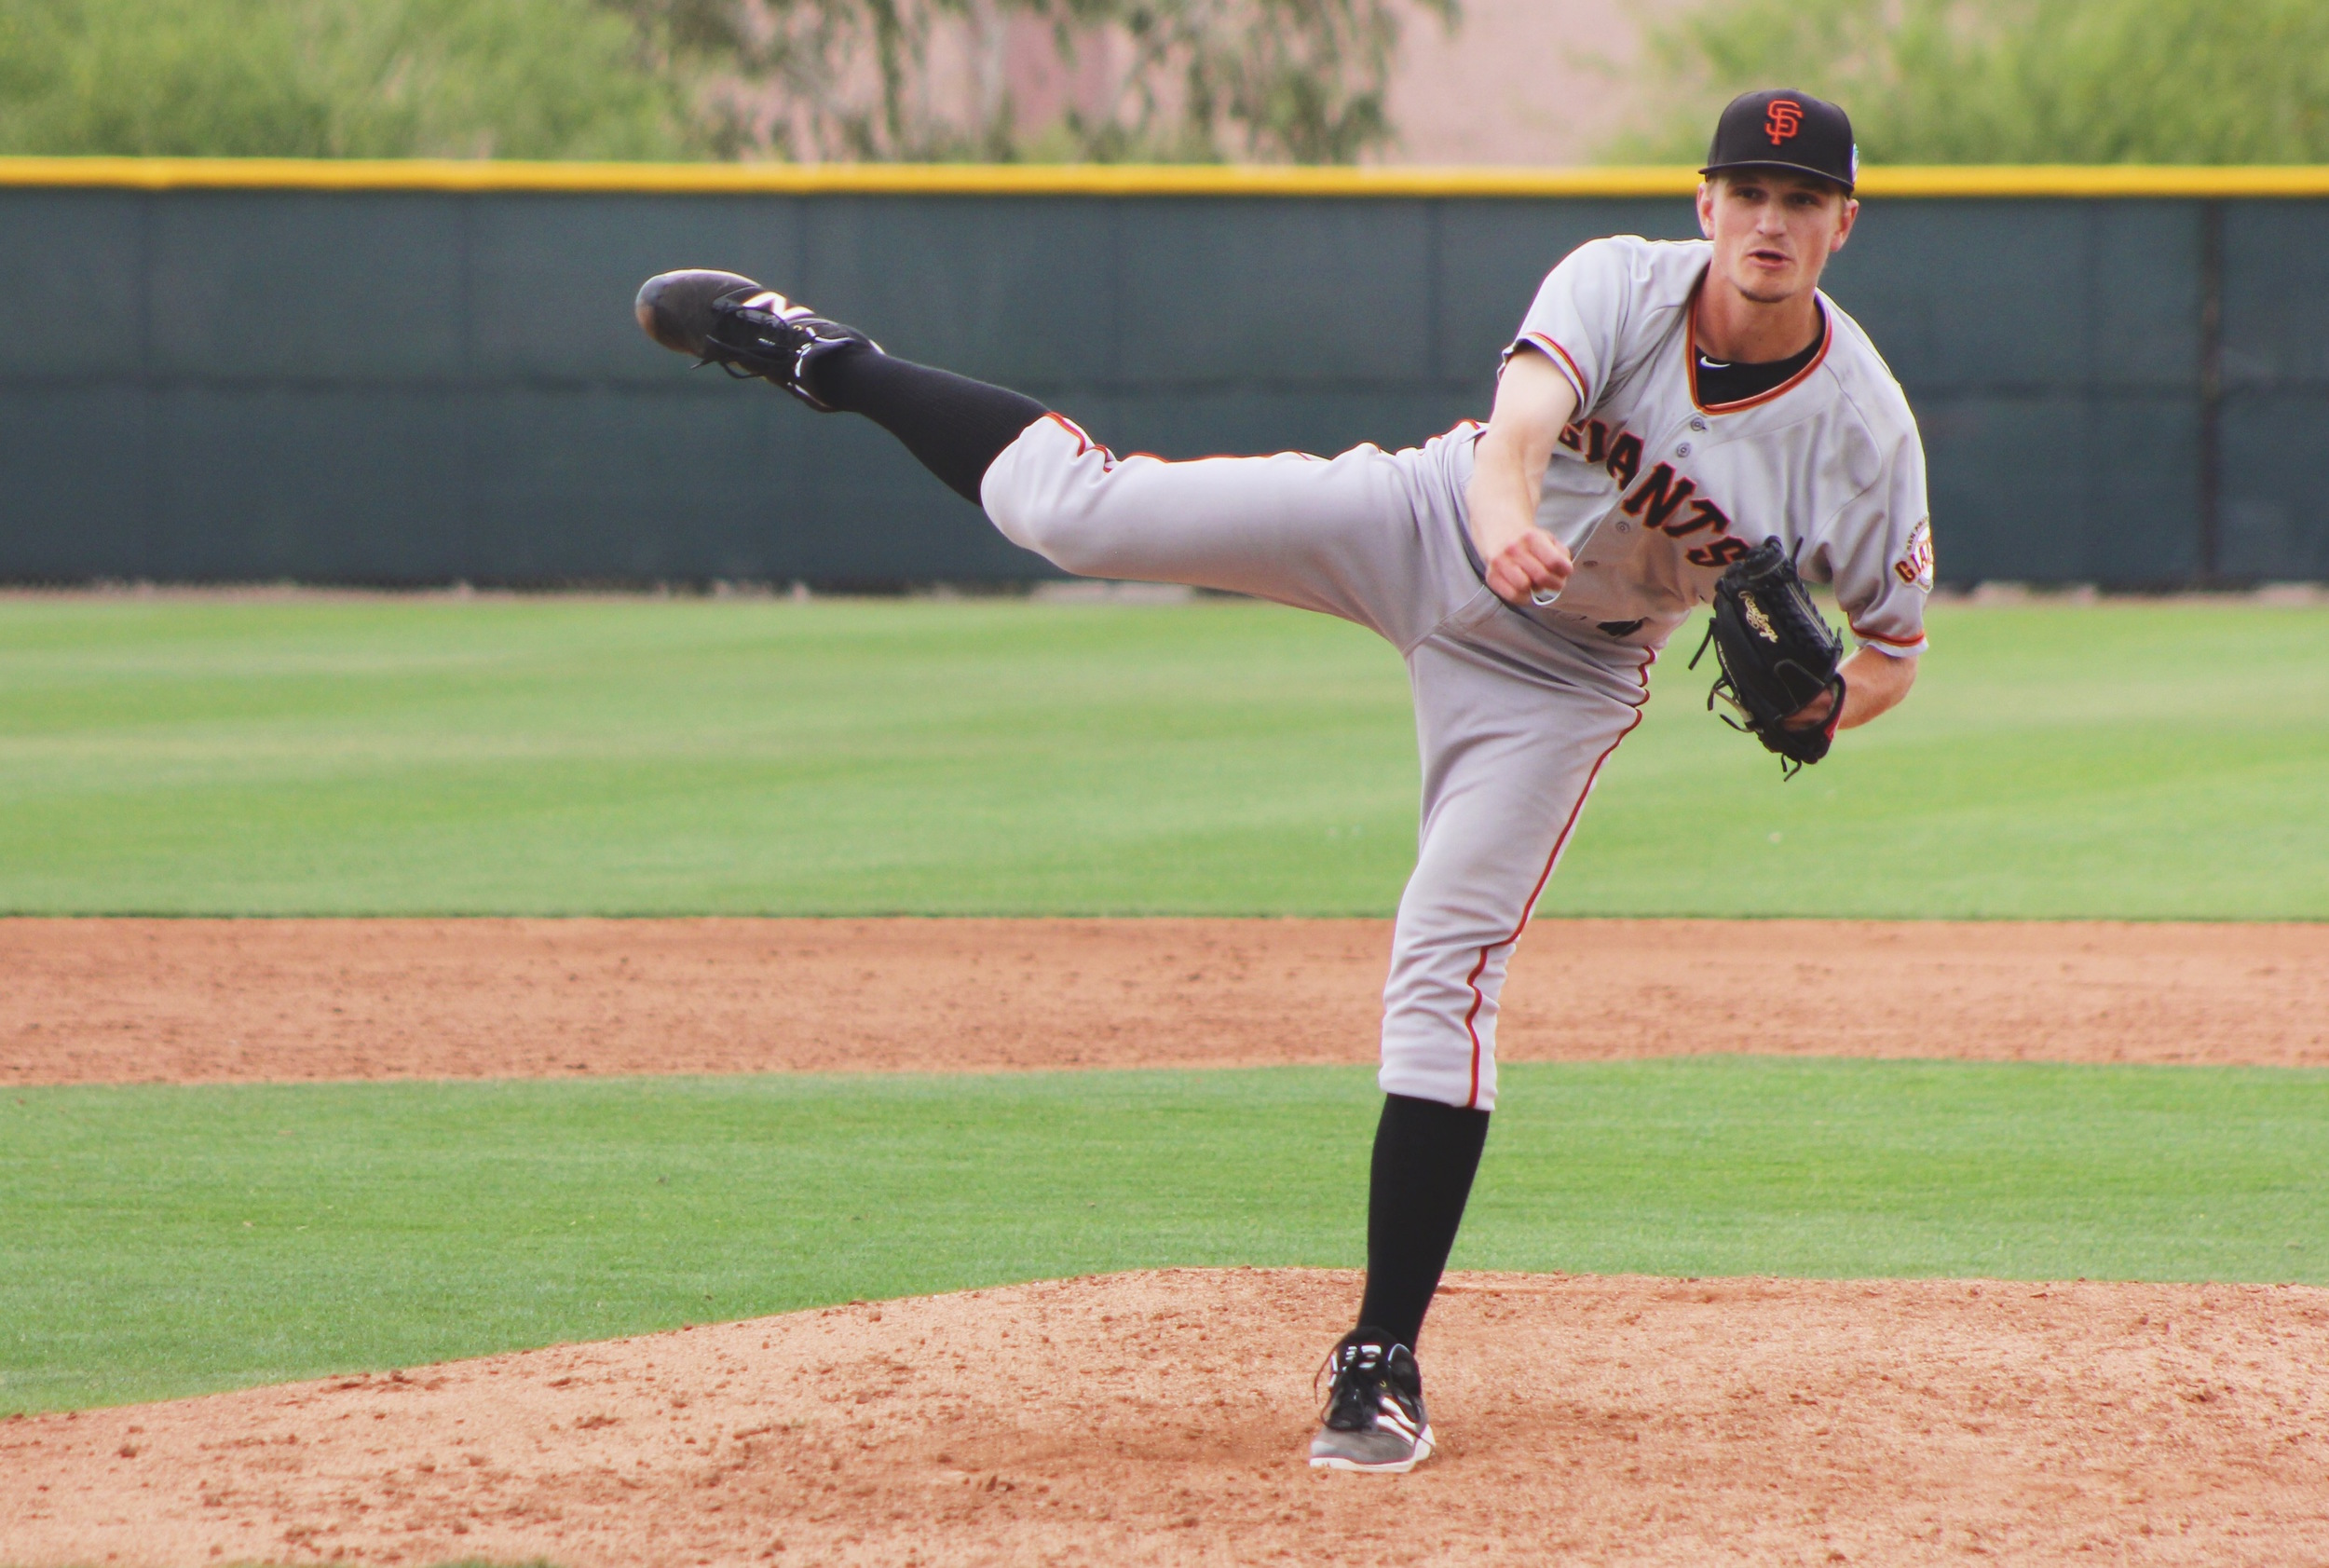 Recent first-round pick Phil Bickford is one of many talented prospects headed to the South Atlantic League. (Conner Penfold/Giant Potential)